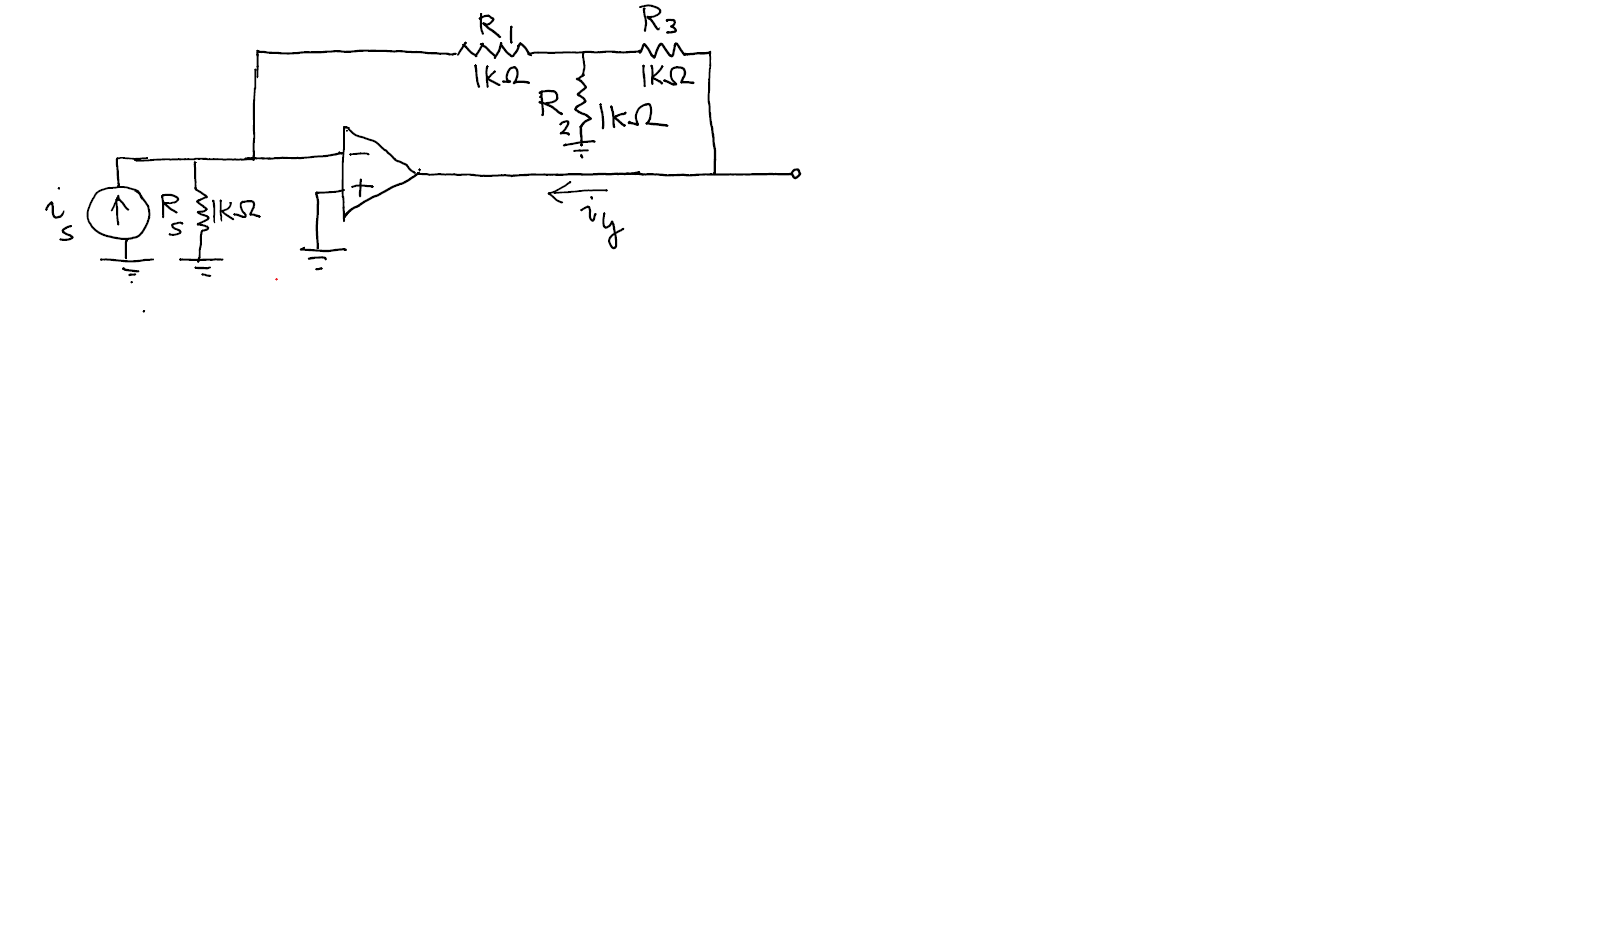 Determine vo/is and iy/is. The op amp is ideal.